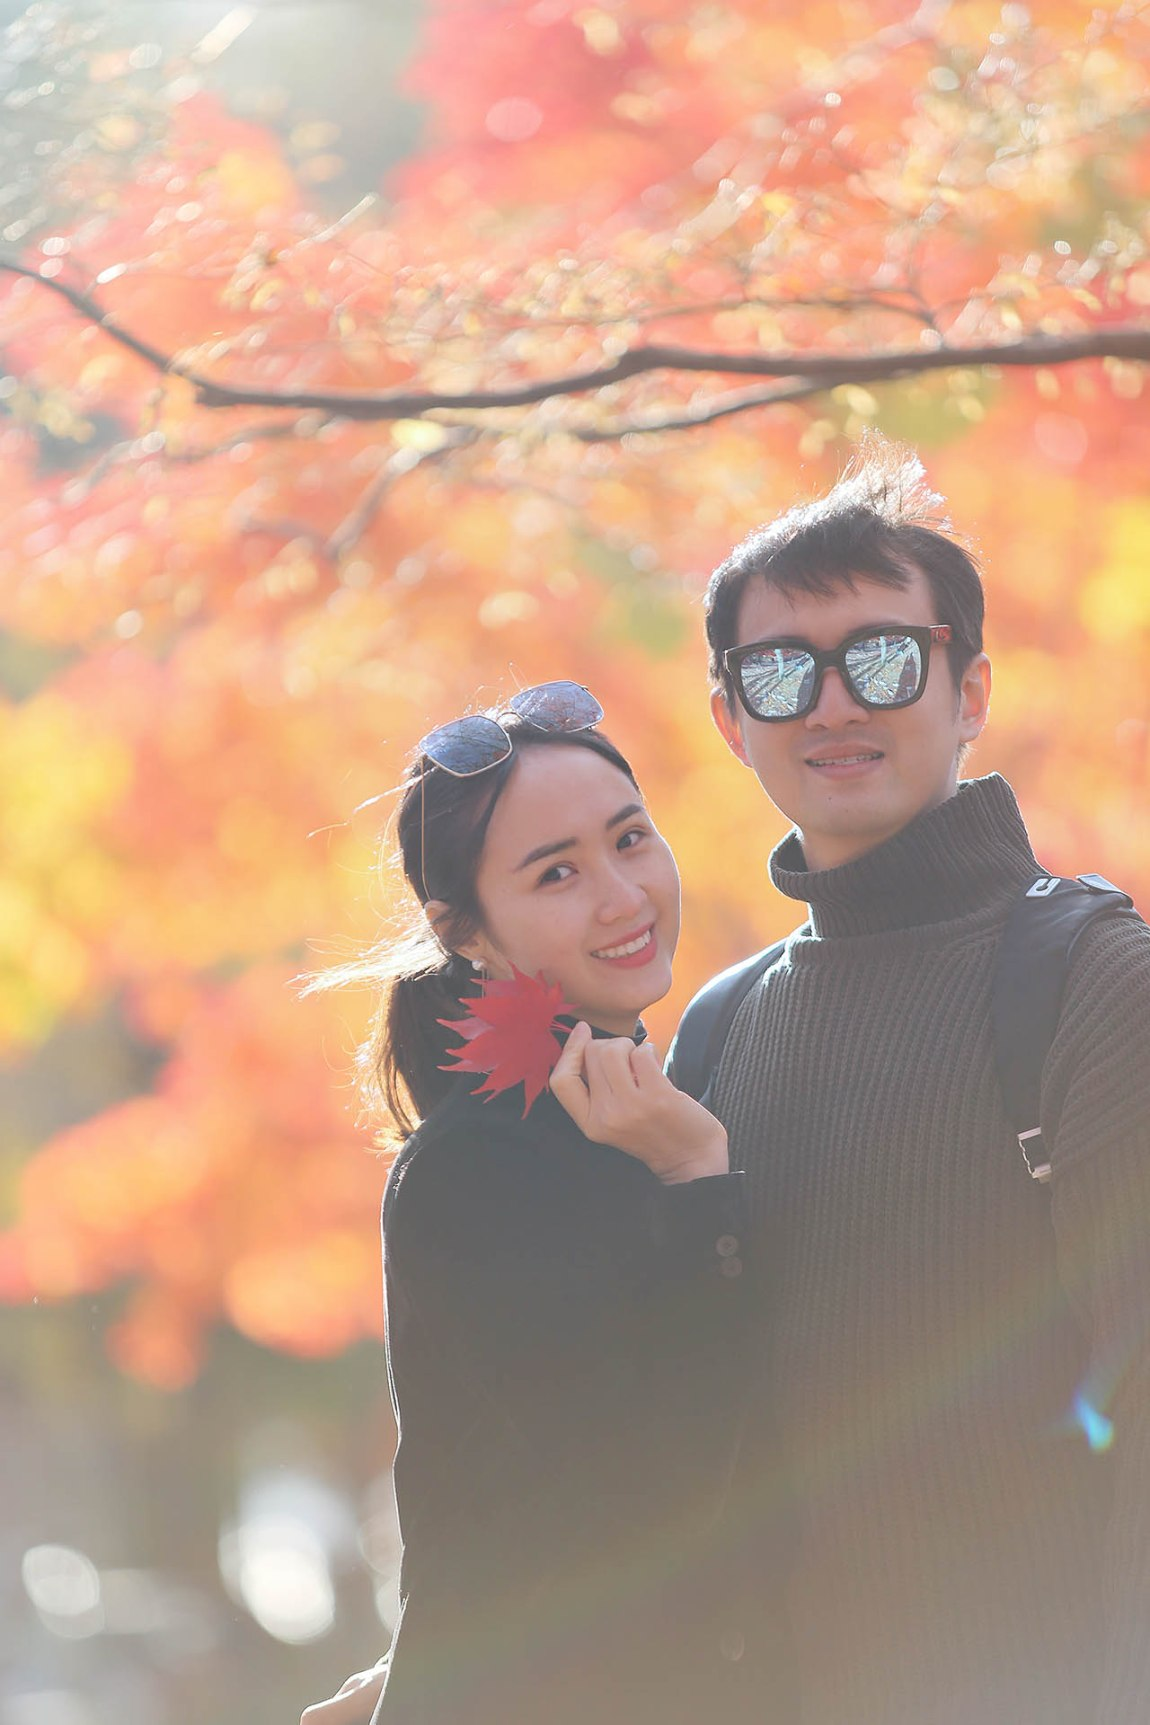 Why don't you take a photo trip to Nami Island this fall?